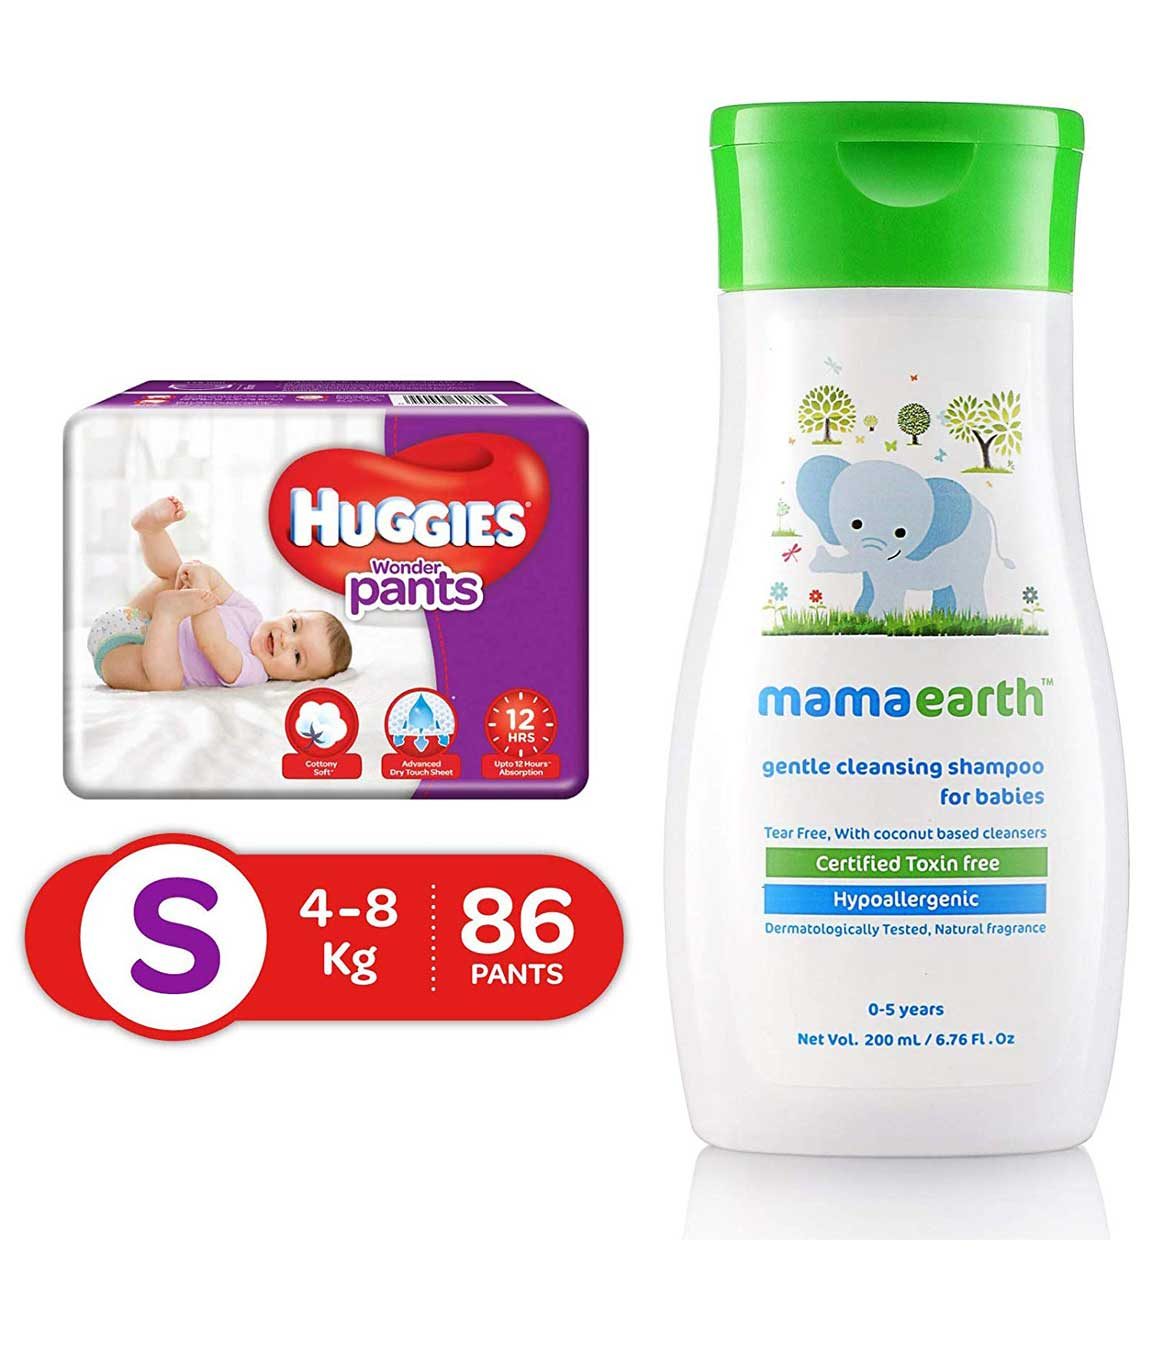 Huggies Wonder Pants Small Size Diapers, 86 Count & Mamaearth Gentle Cleansing Shampoo for babies (200 ml, 0-5 Yrs)